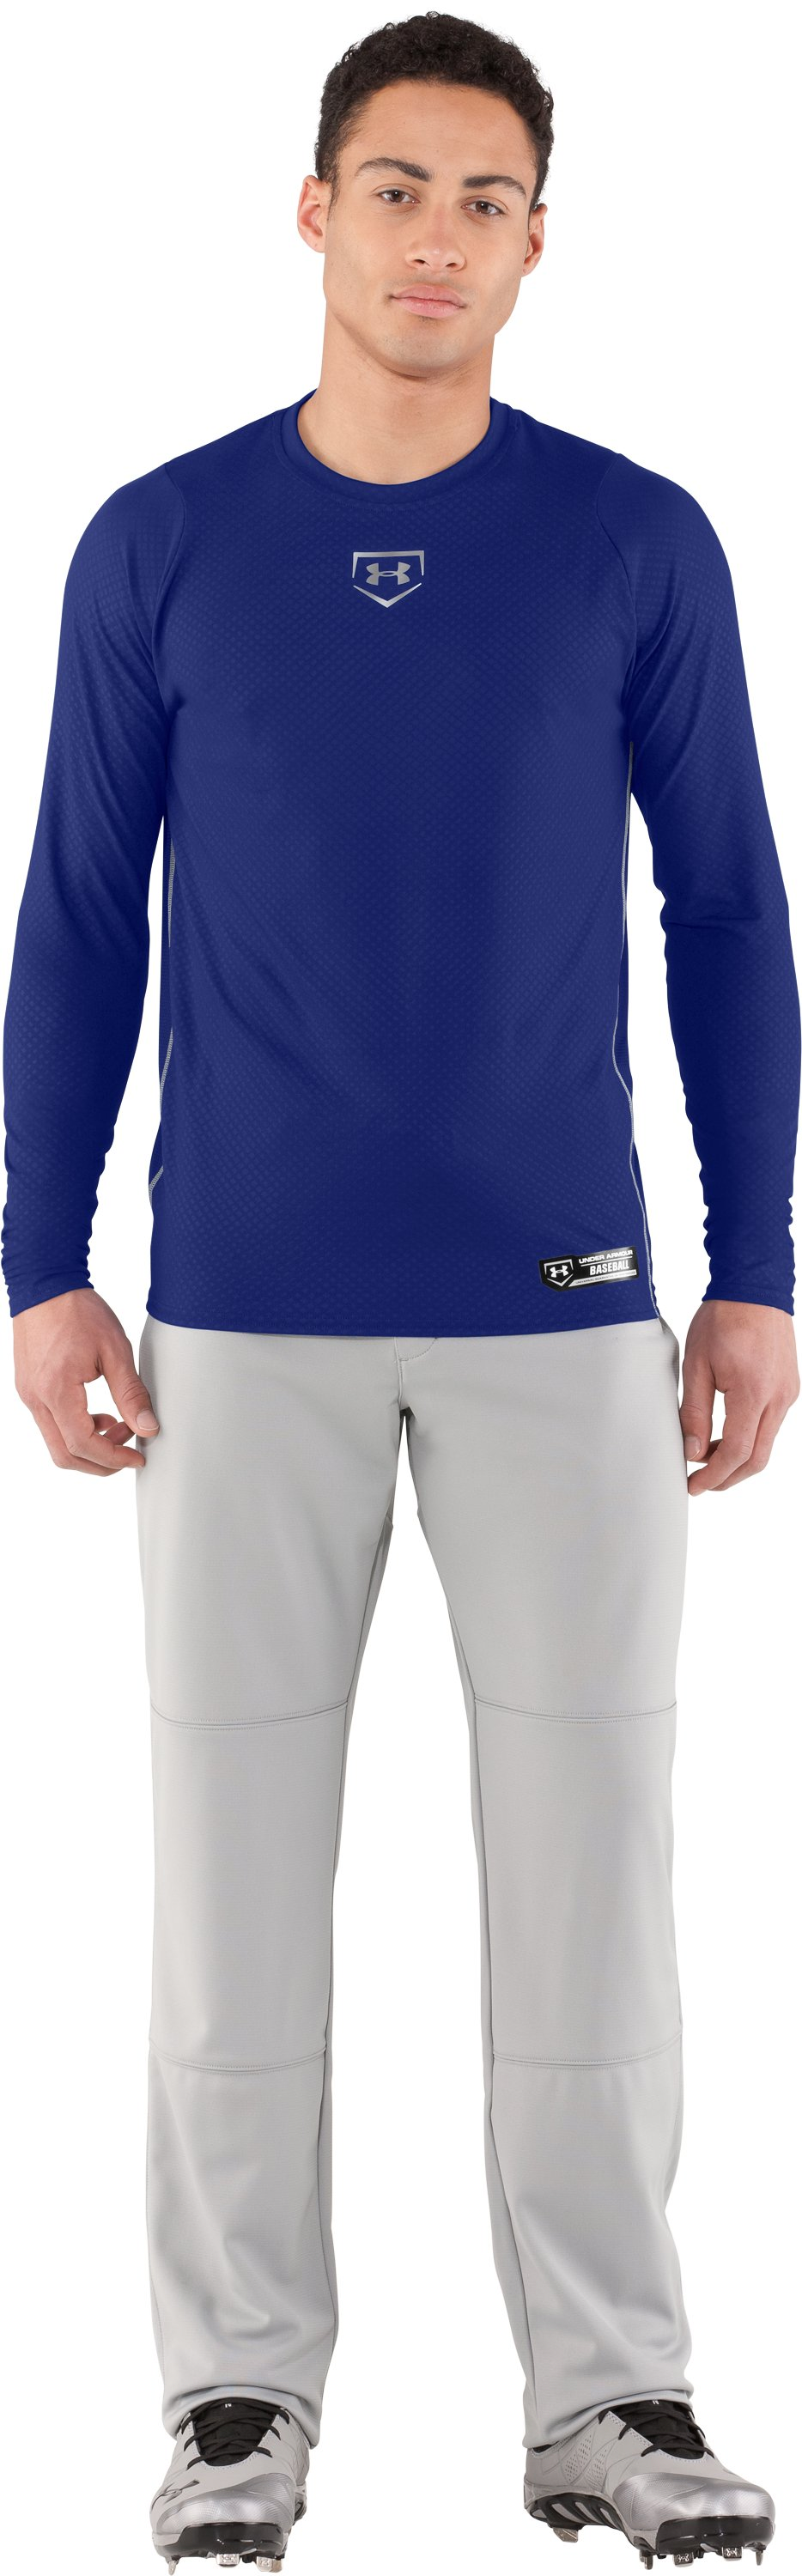 Men's UA Diamond Armour™ Baseball Long Sleeve Baselayer, Royal